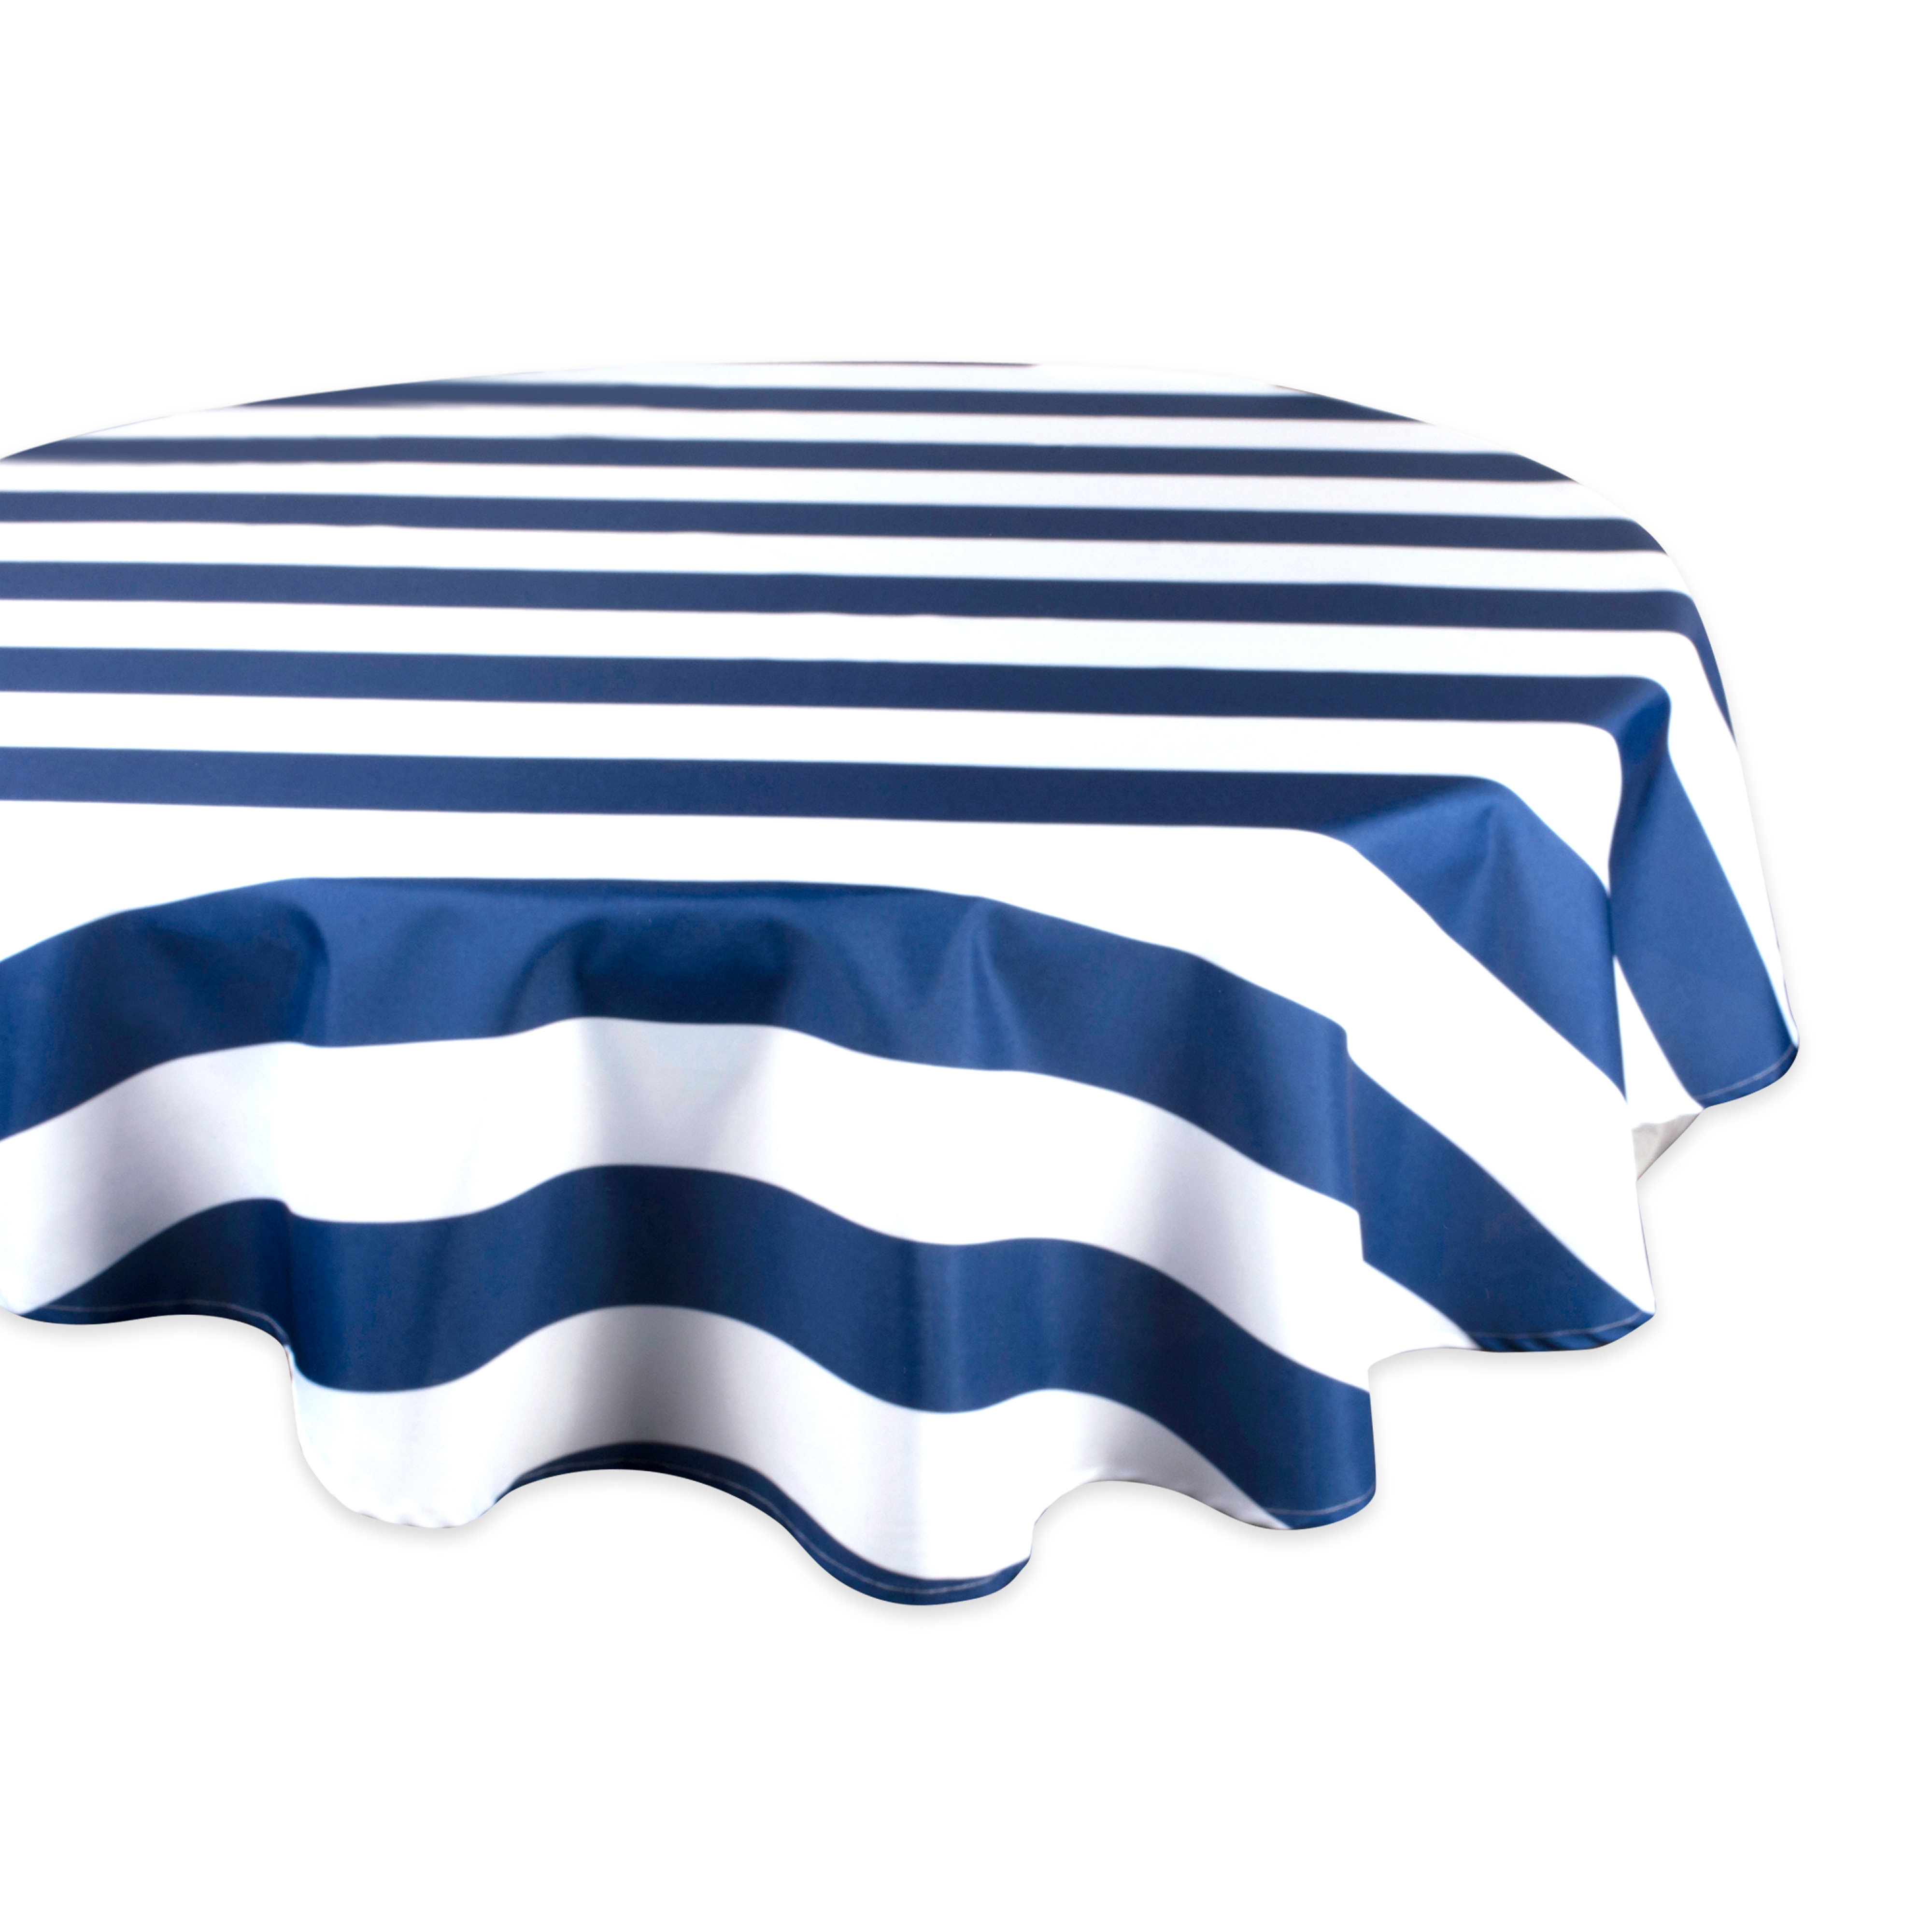 "Design Imports Casual Round Cabana Stripe Outdoor Tablecloth, 60"" x 60"", 100% Polyester, Nautical Blue"